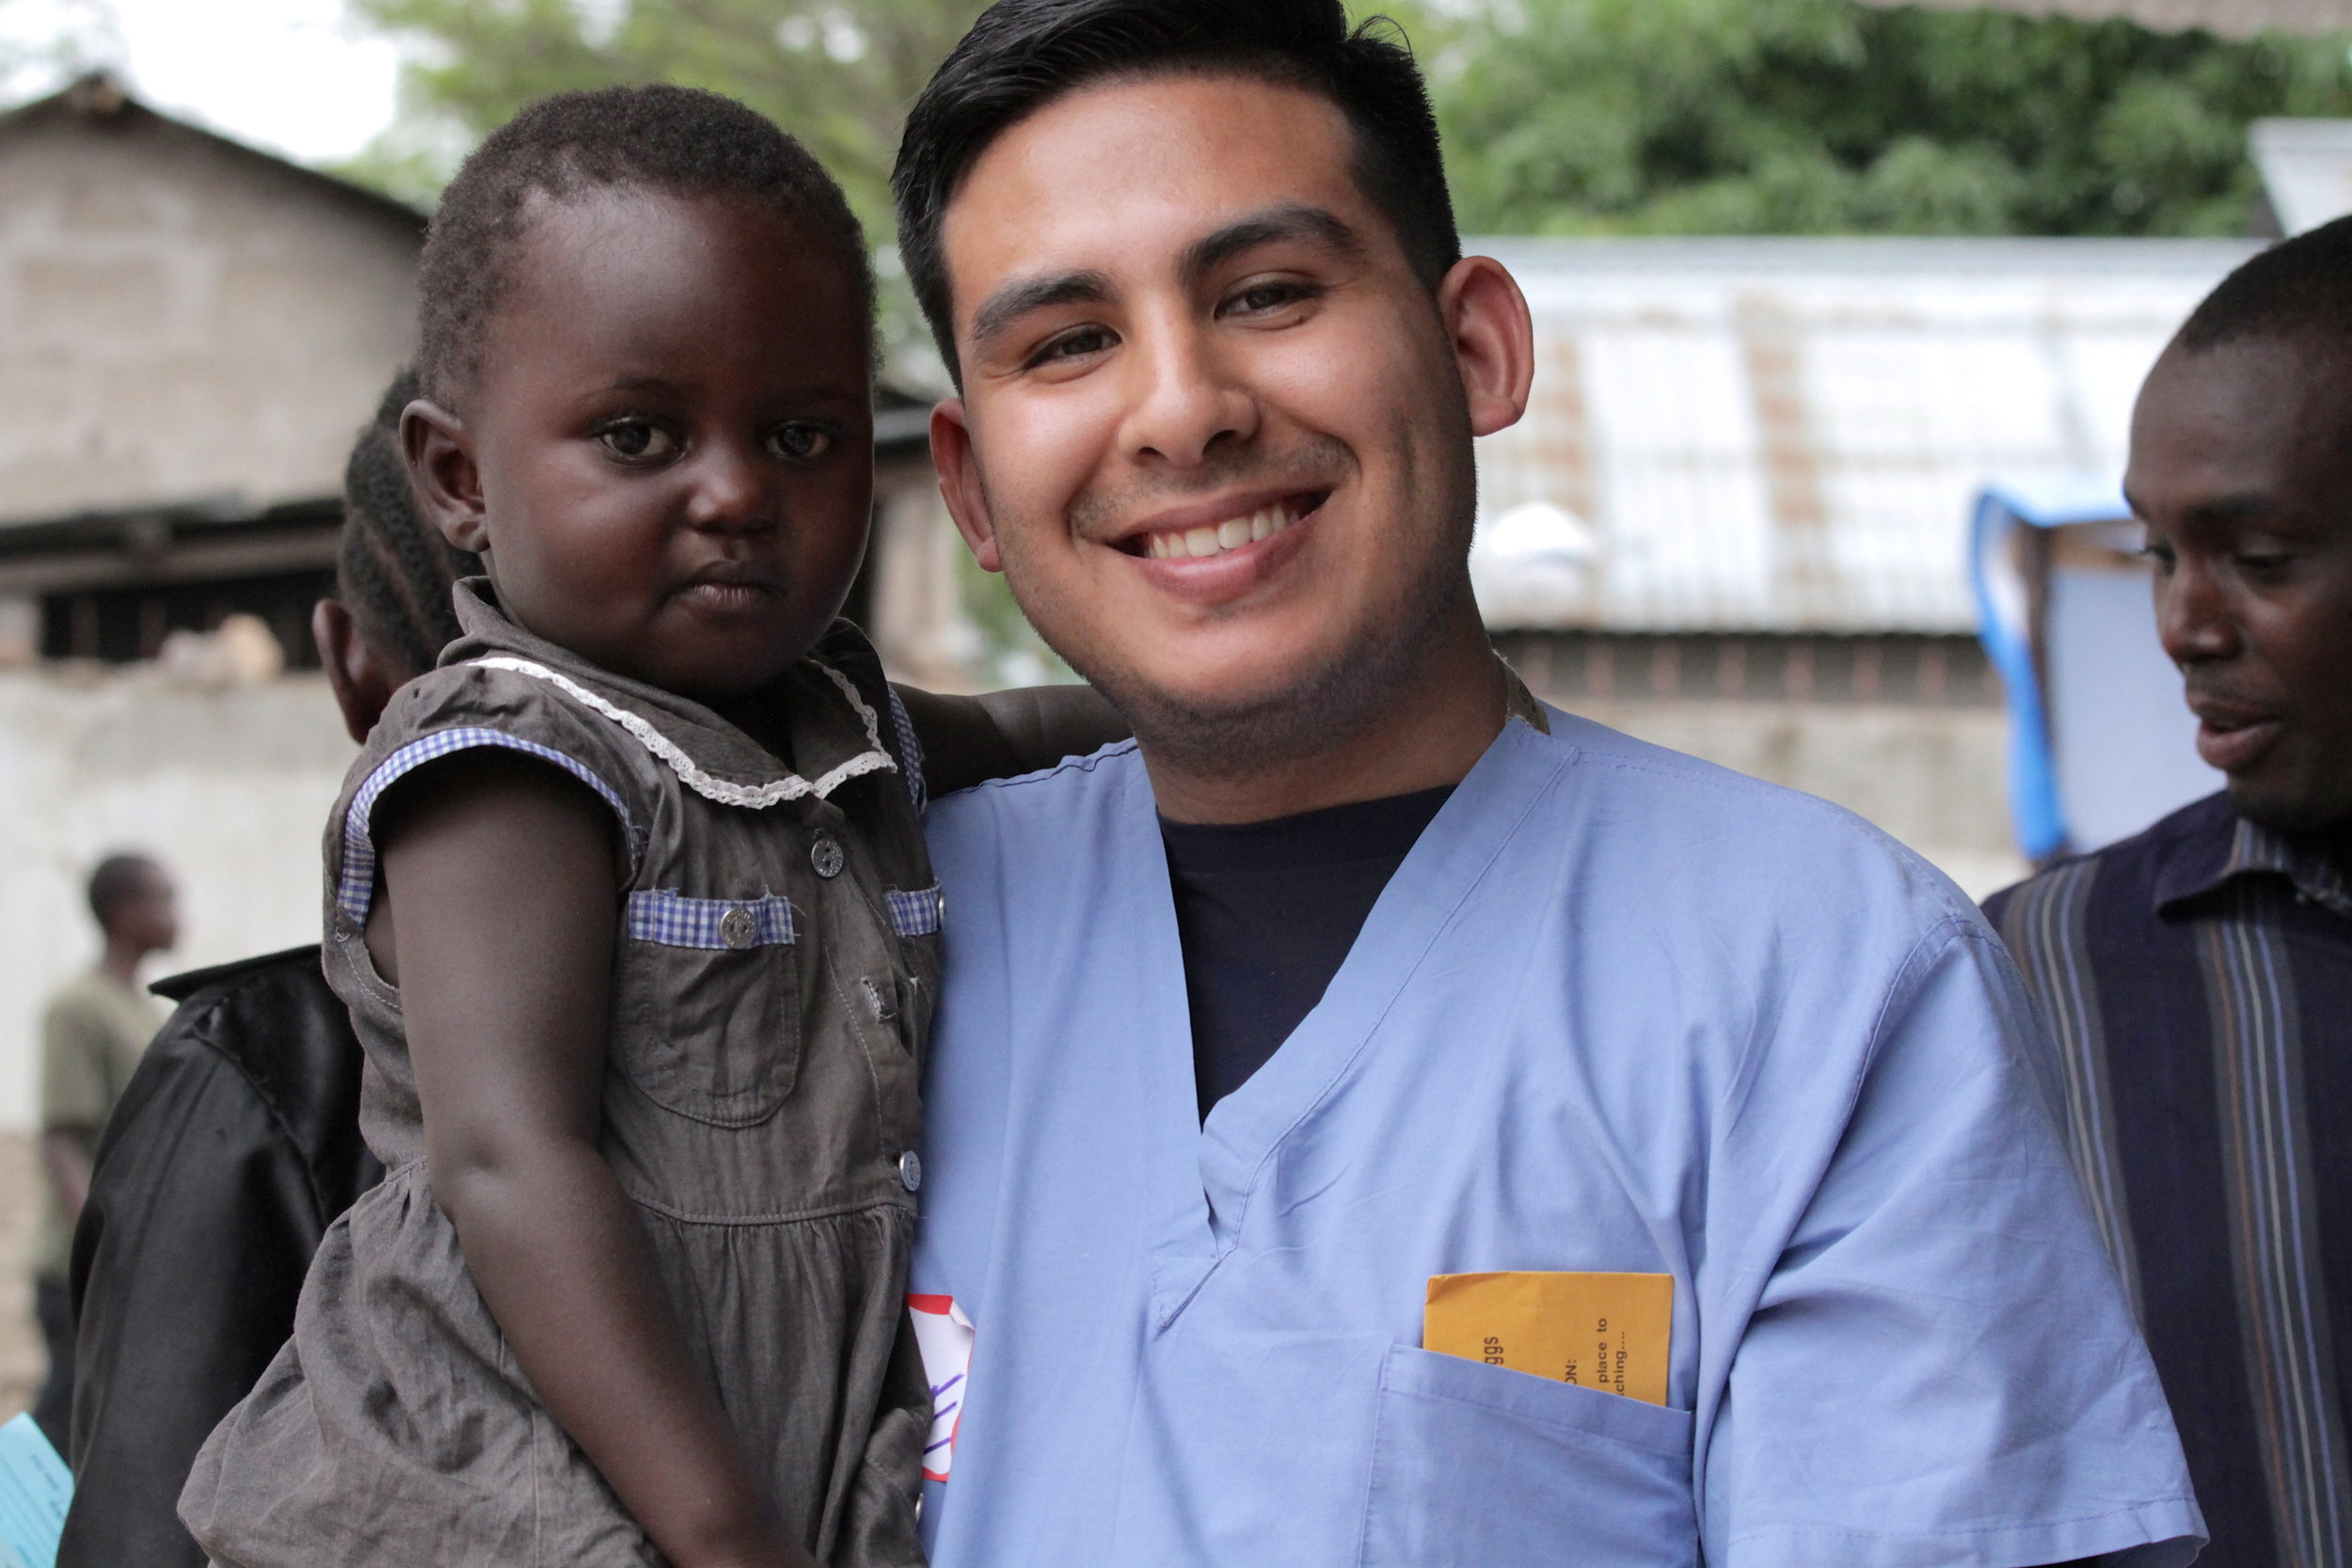 africa-medic-medical-mission-africa-medical-mission-nurse-and-child-medican-clinic-medical-relief_t20_0A99de.jpg